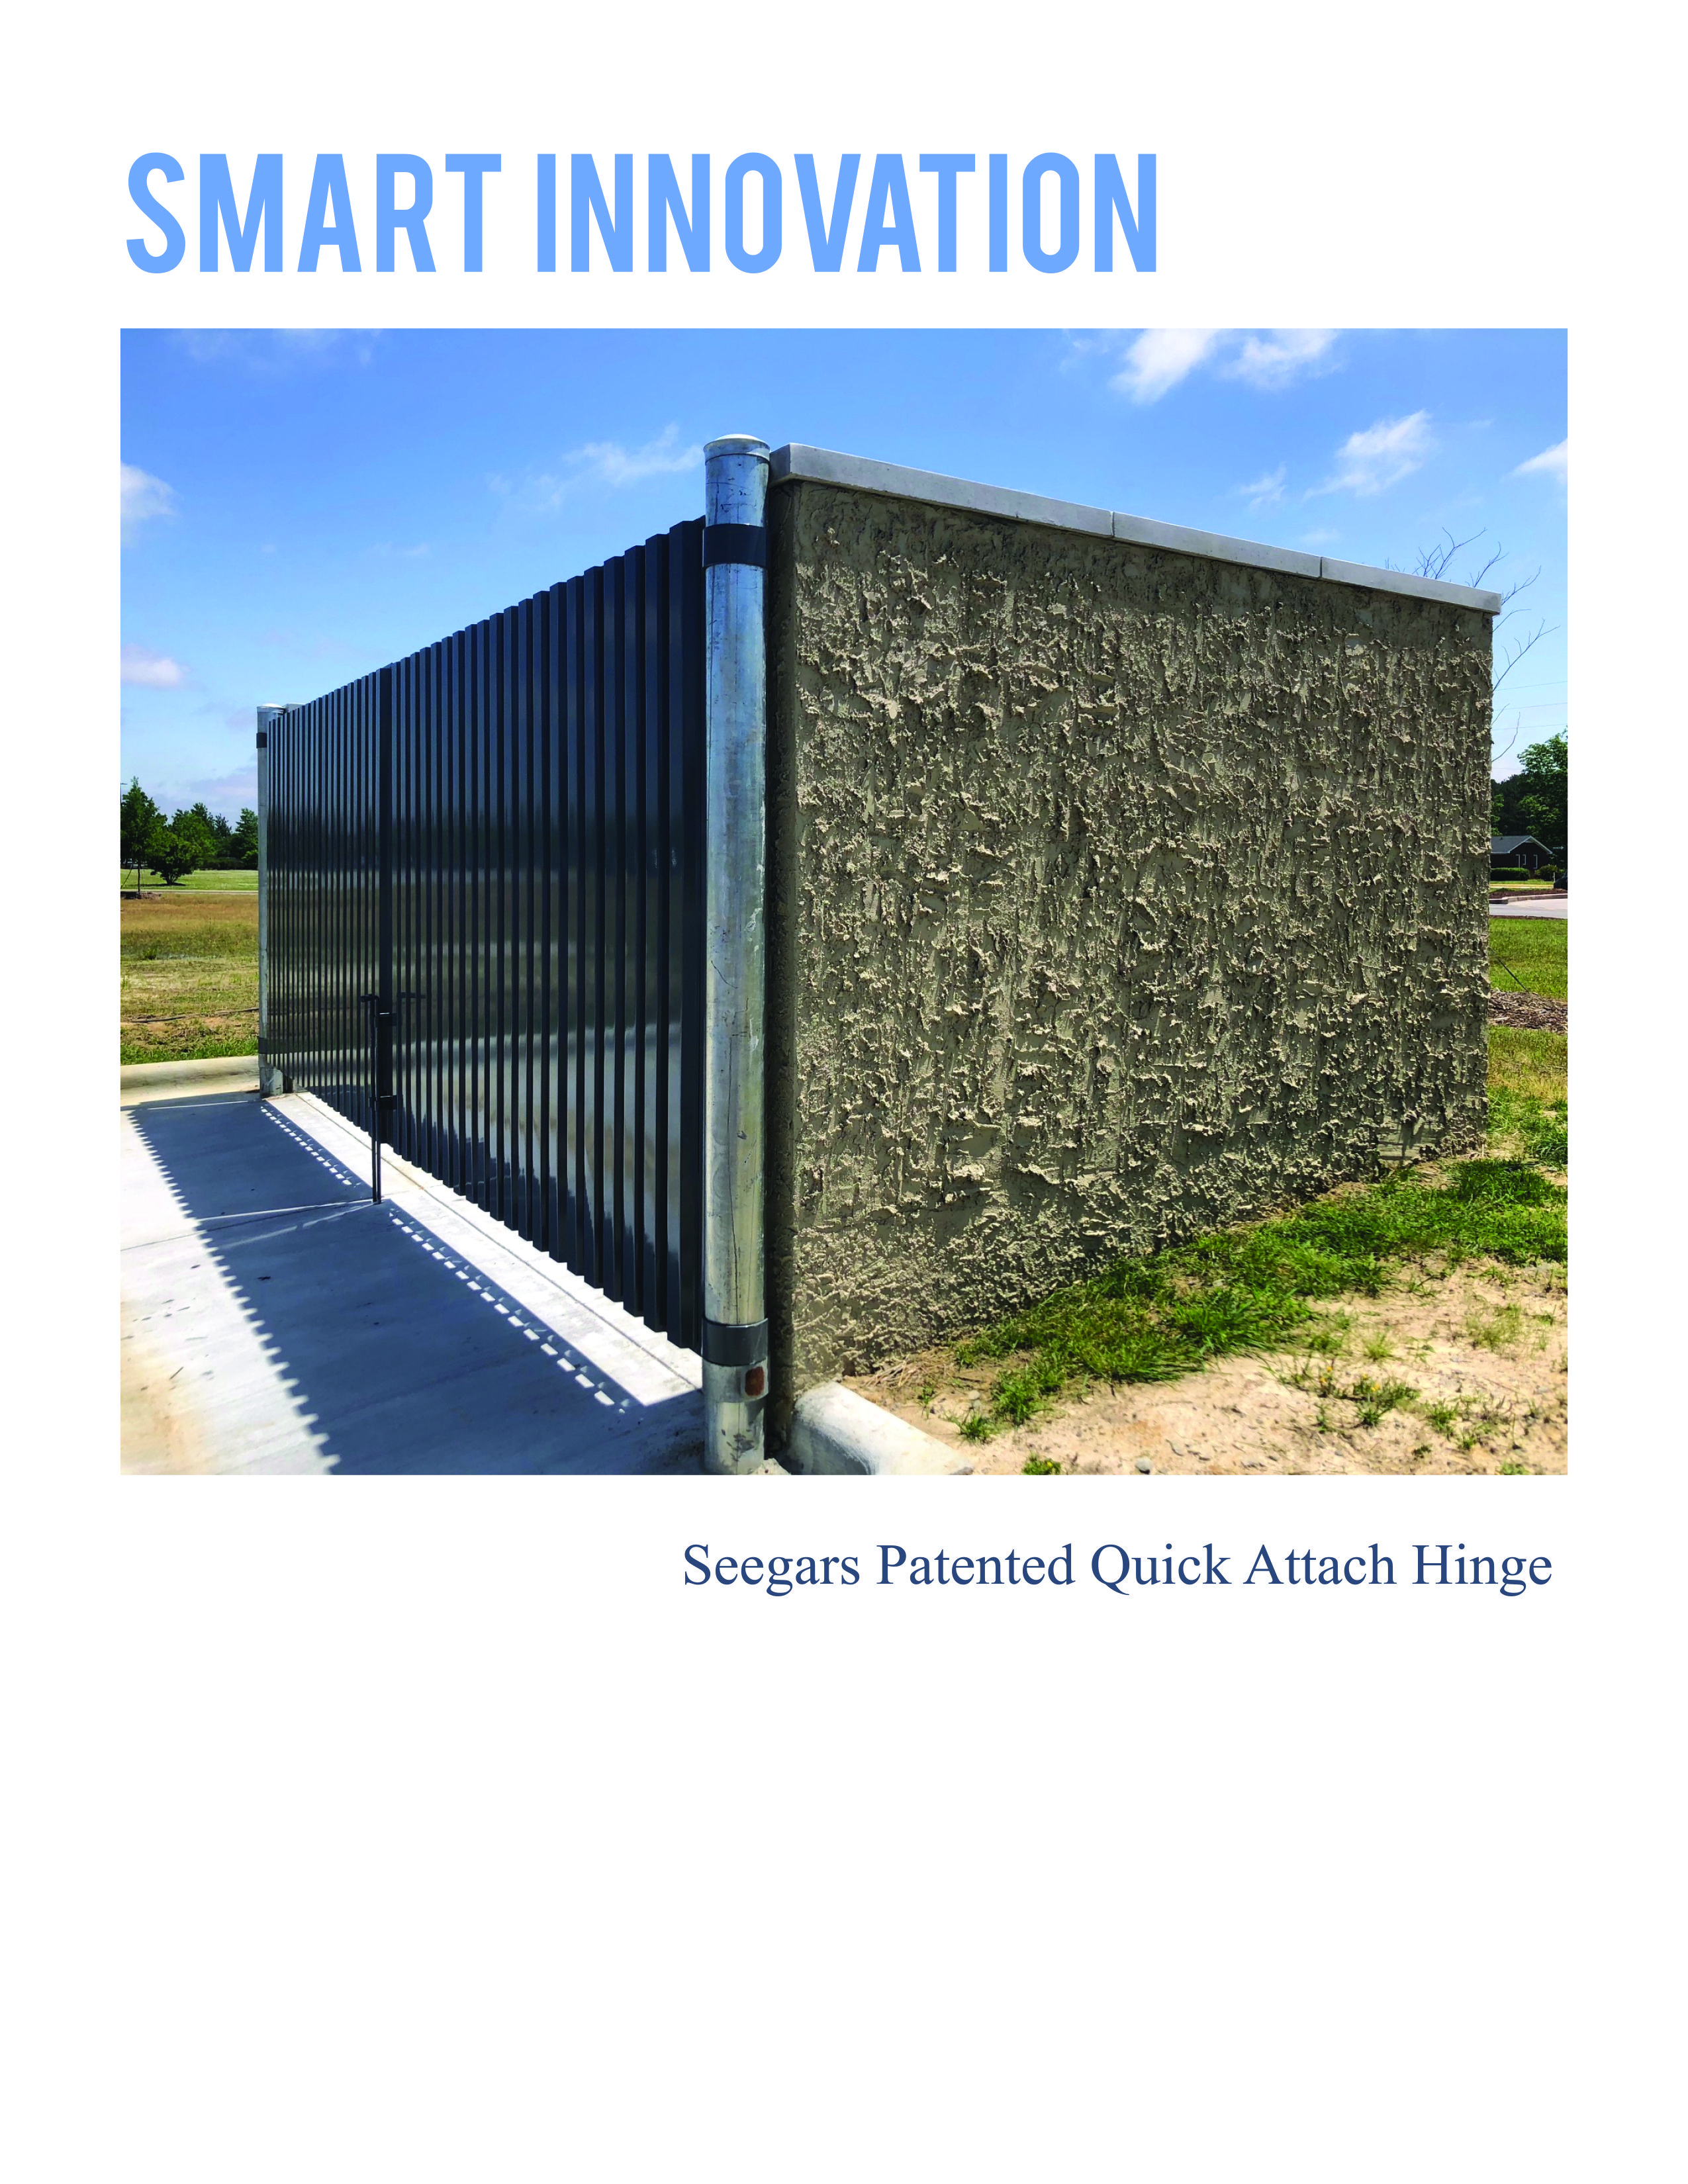 Patented Quick Attach Hinge For Dumpster Enclosures We Build The Best Dumpster Gates And Custom Hinges After Having Had Gate Hinges Fencing Companies Hinges